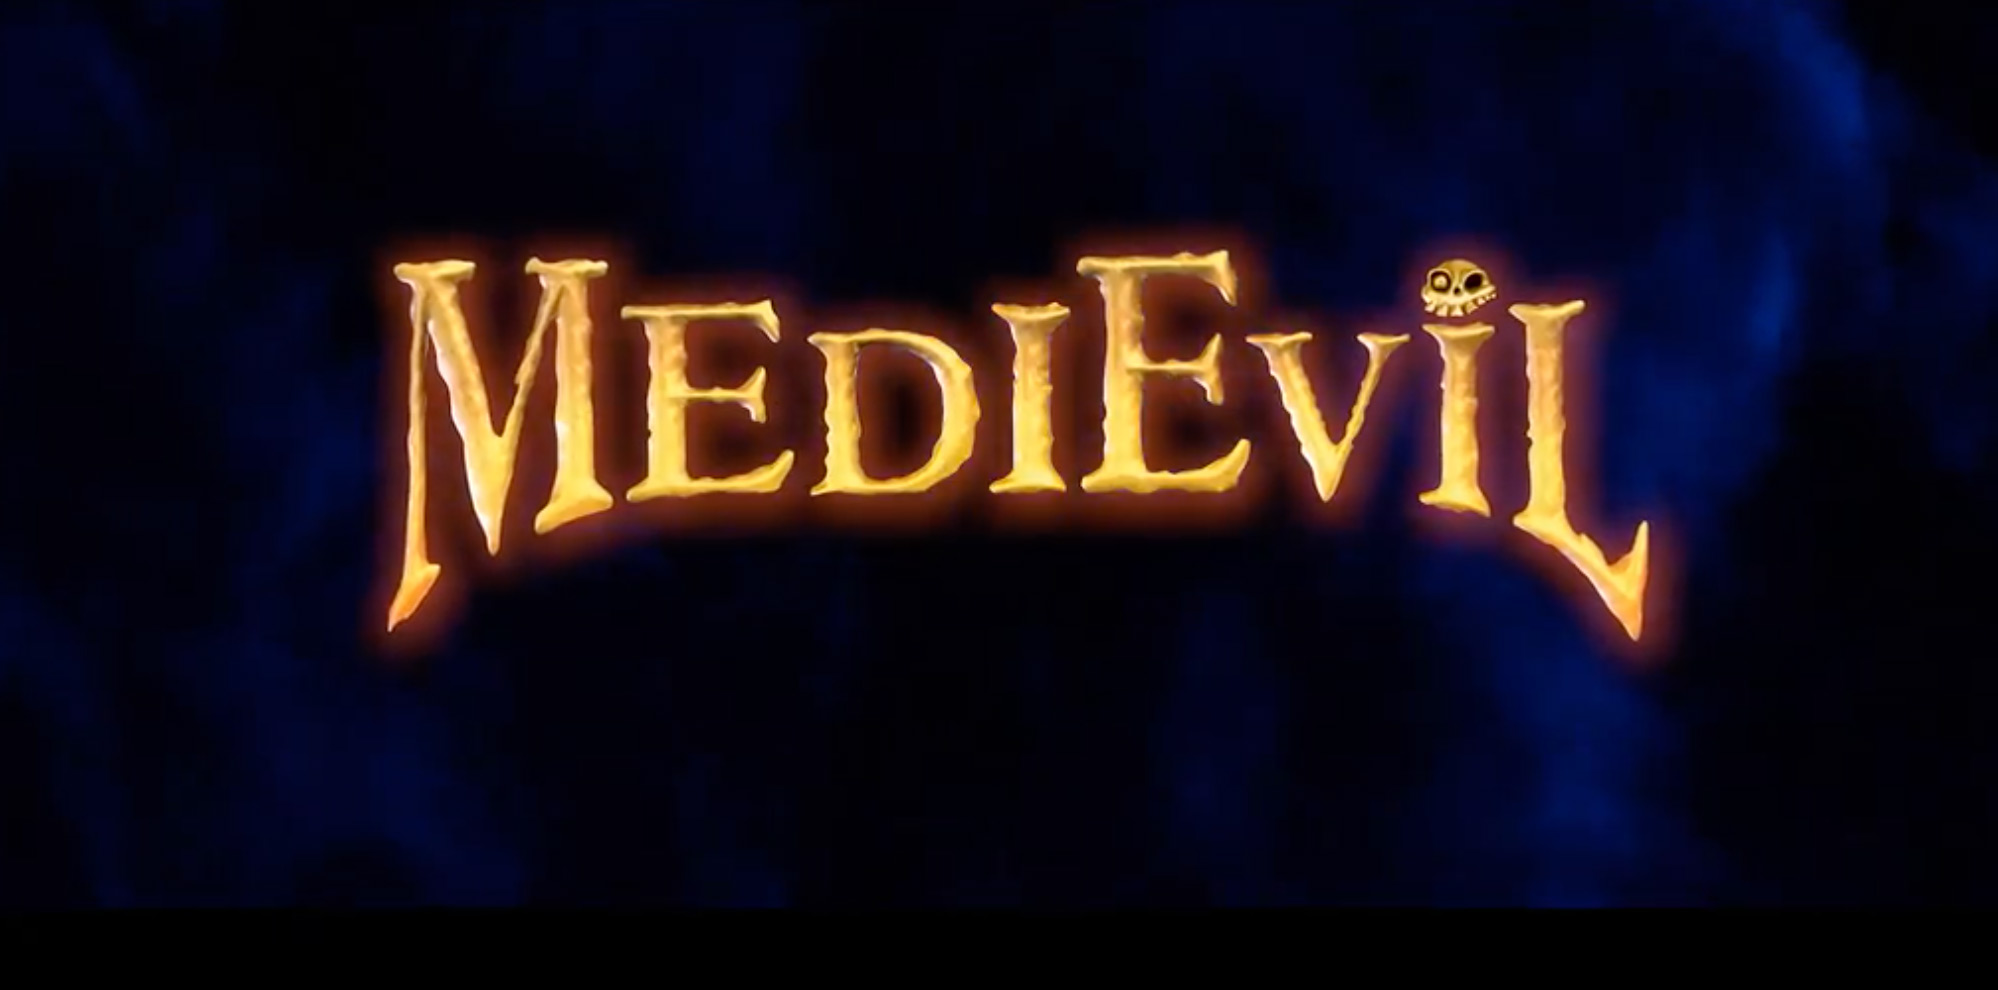 MediEvil is making a comeback screenshot